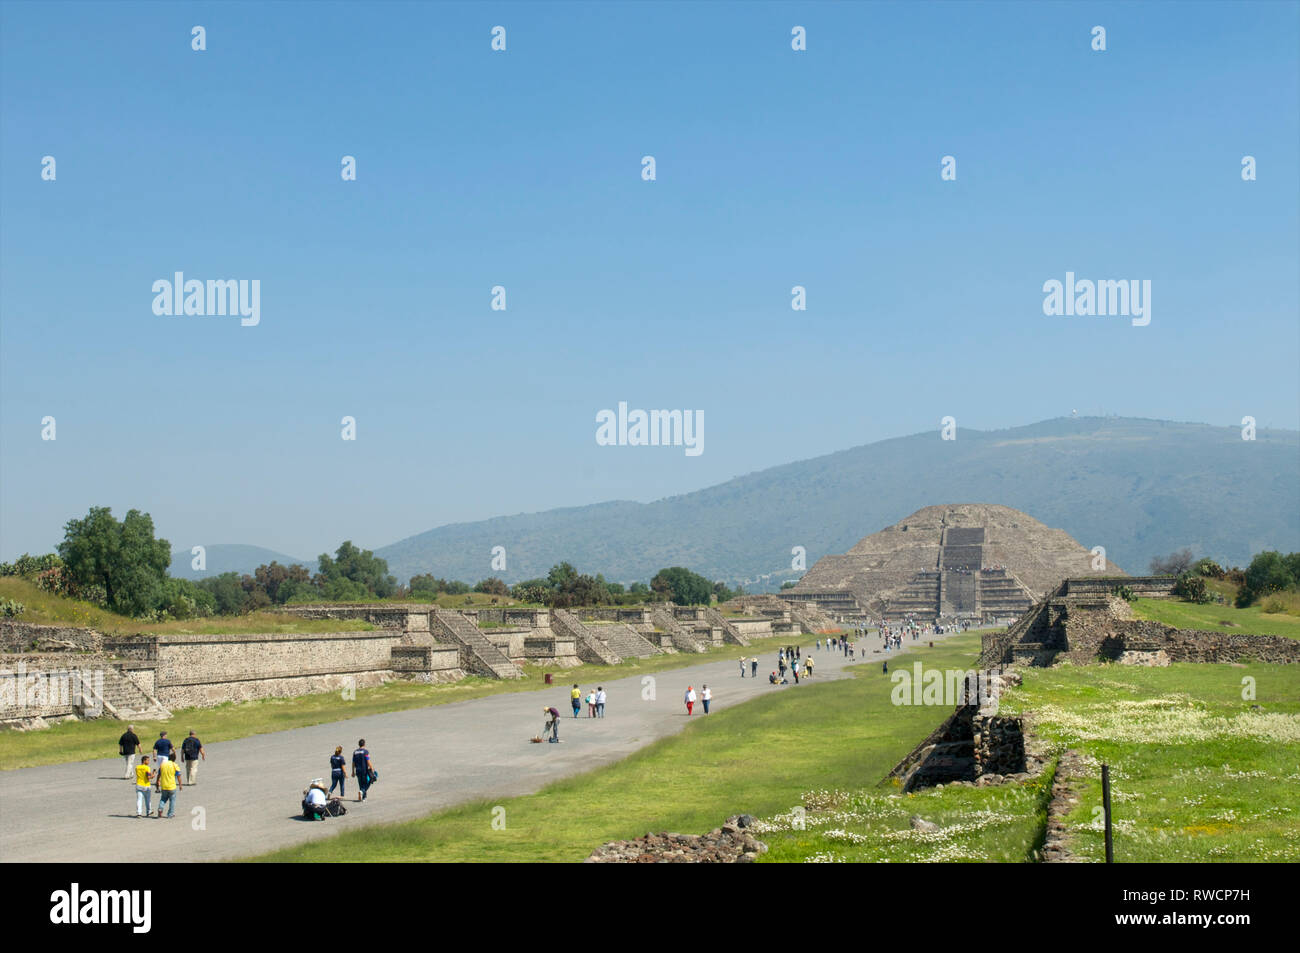 Tourists walking on Avenue of the Dead and the view of Pyramid of the Moon at Teotihuacan, Mexico - Stock Image